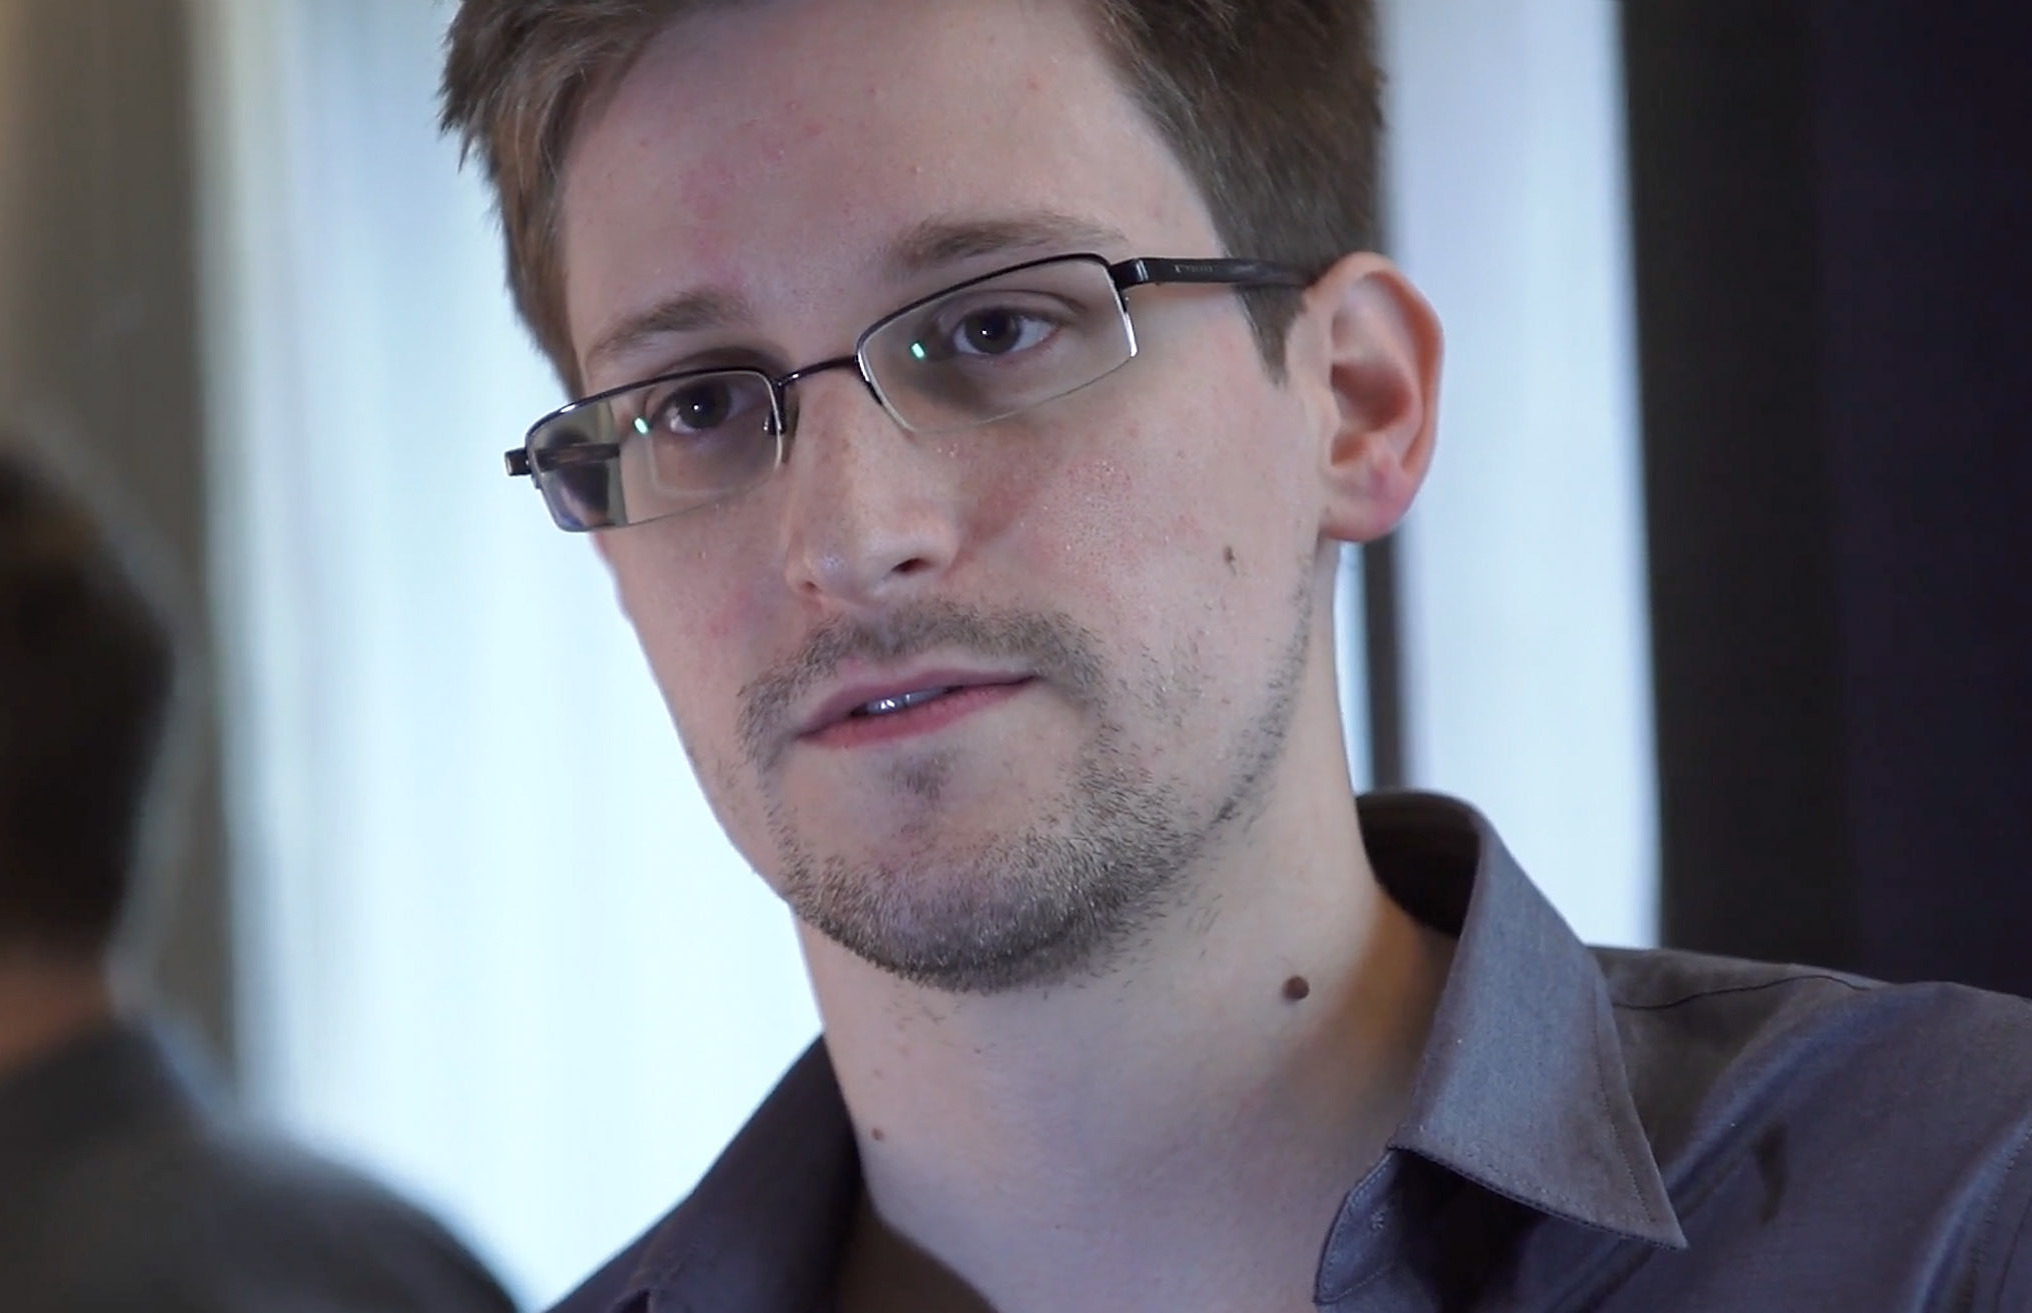 Edward Snowden: From 'Geeky' Dropout To NSA Leaker